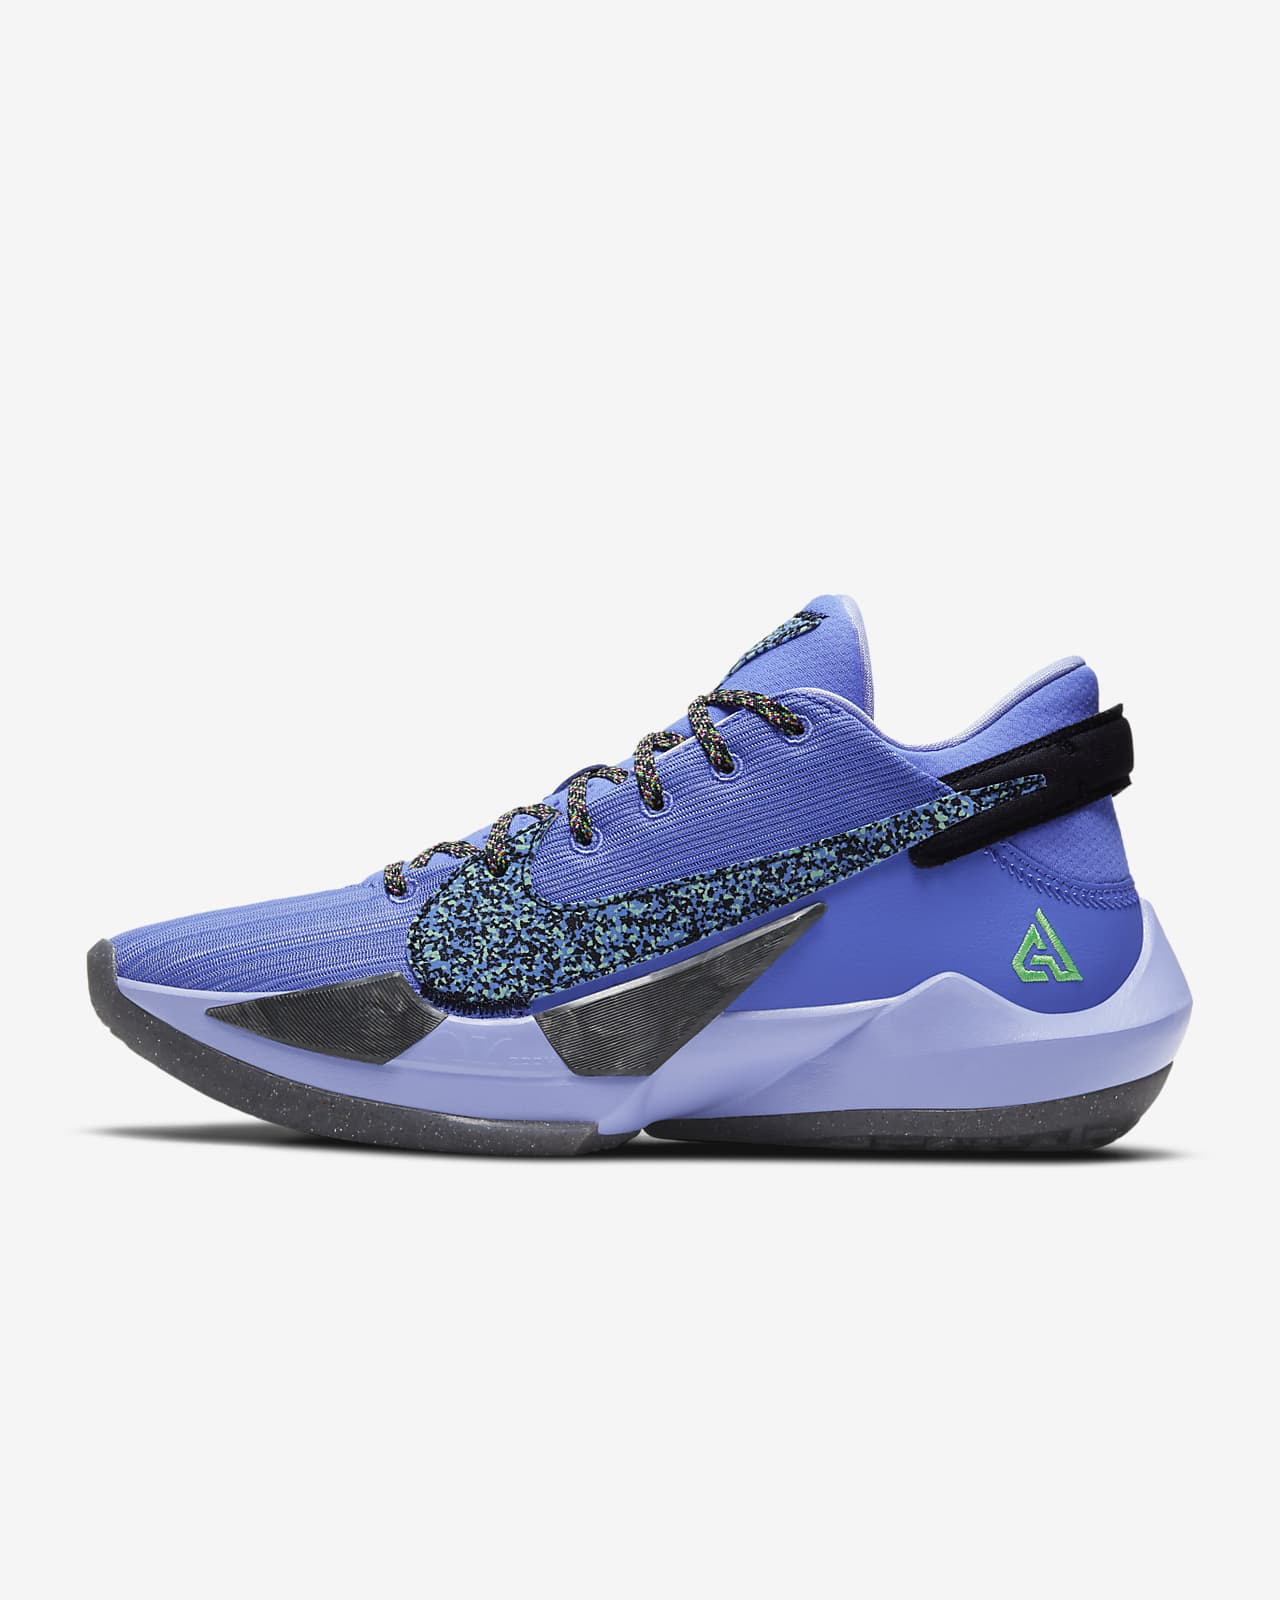 """Zoom Freak 2 """"Play for the Future"""" Basketball Shoe"""